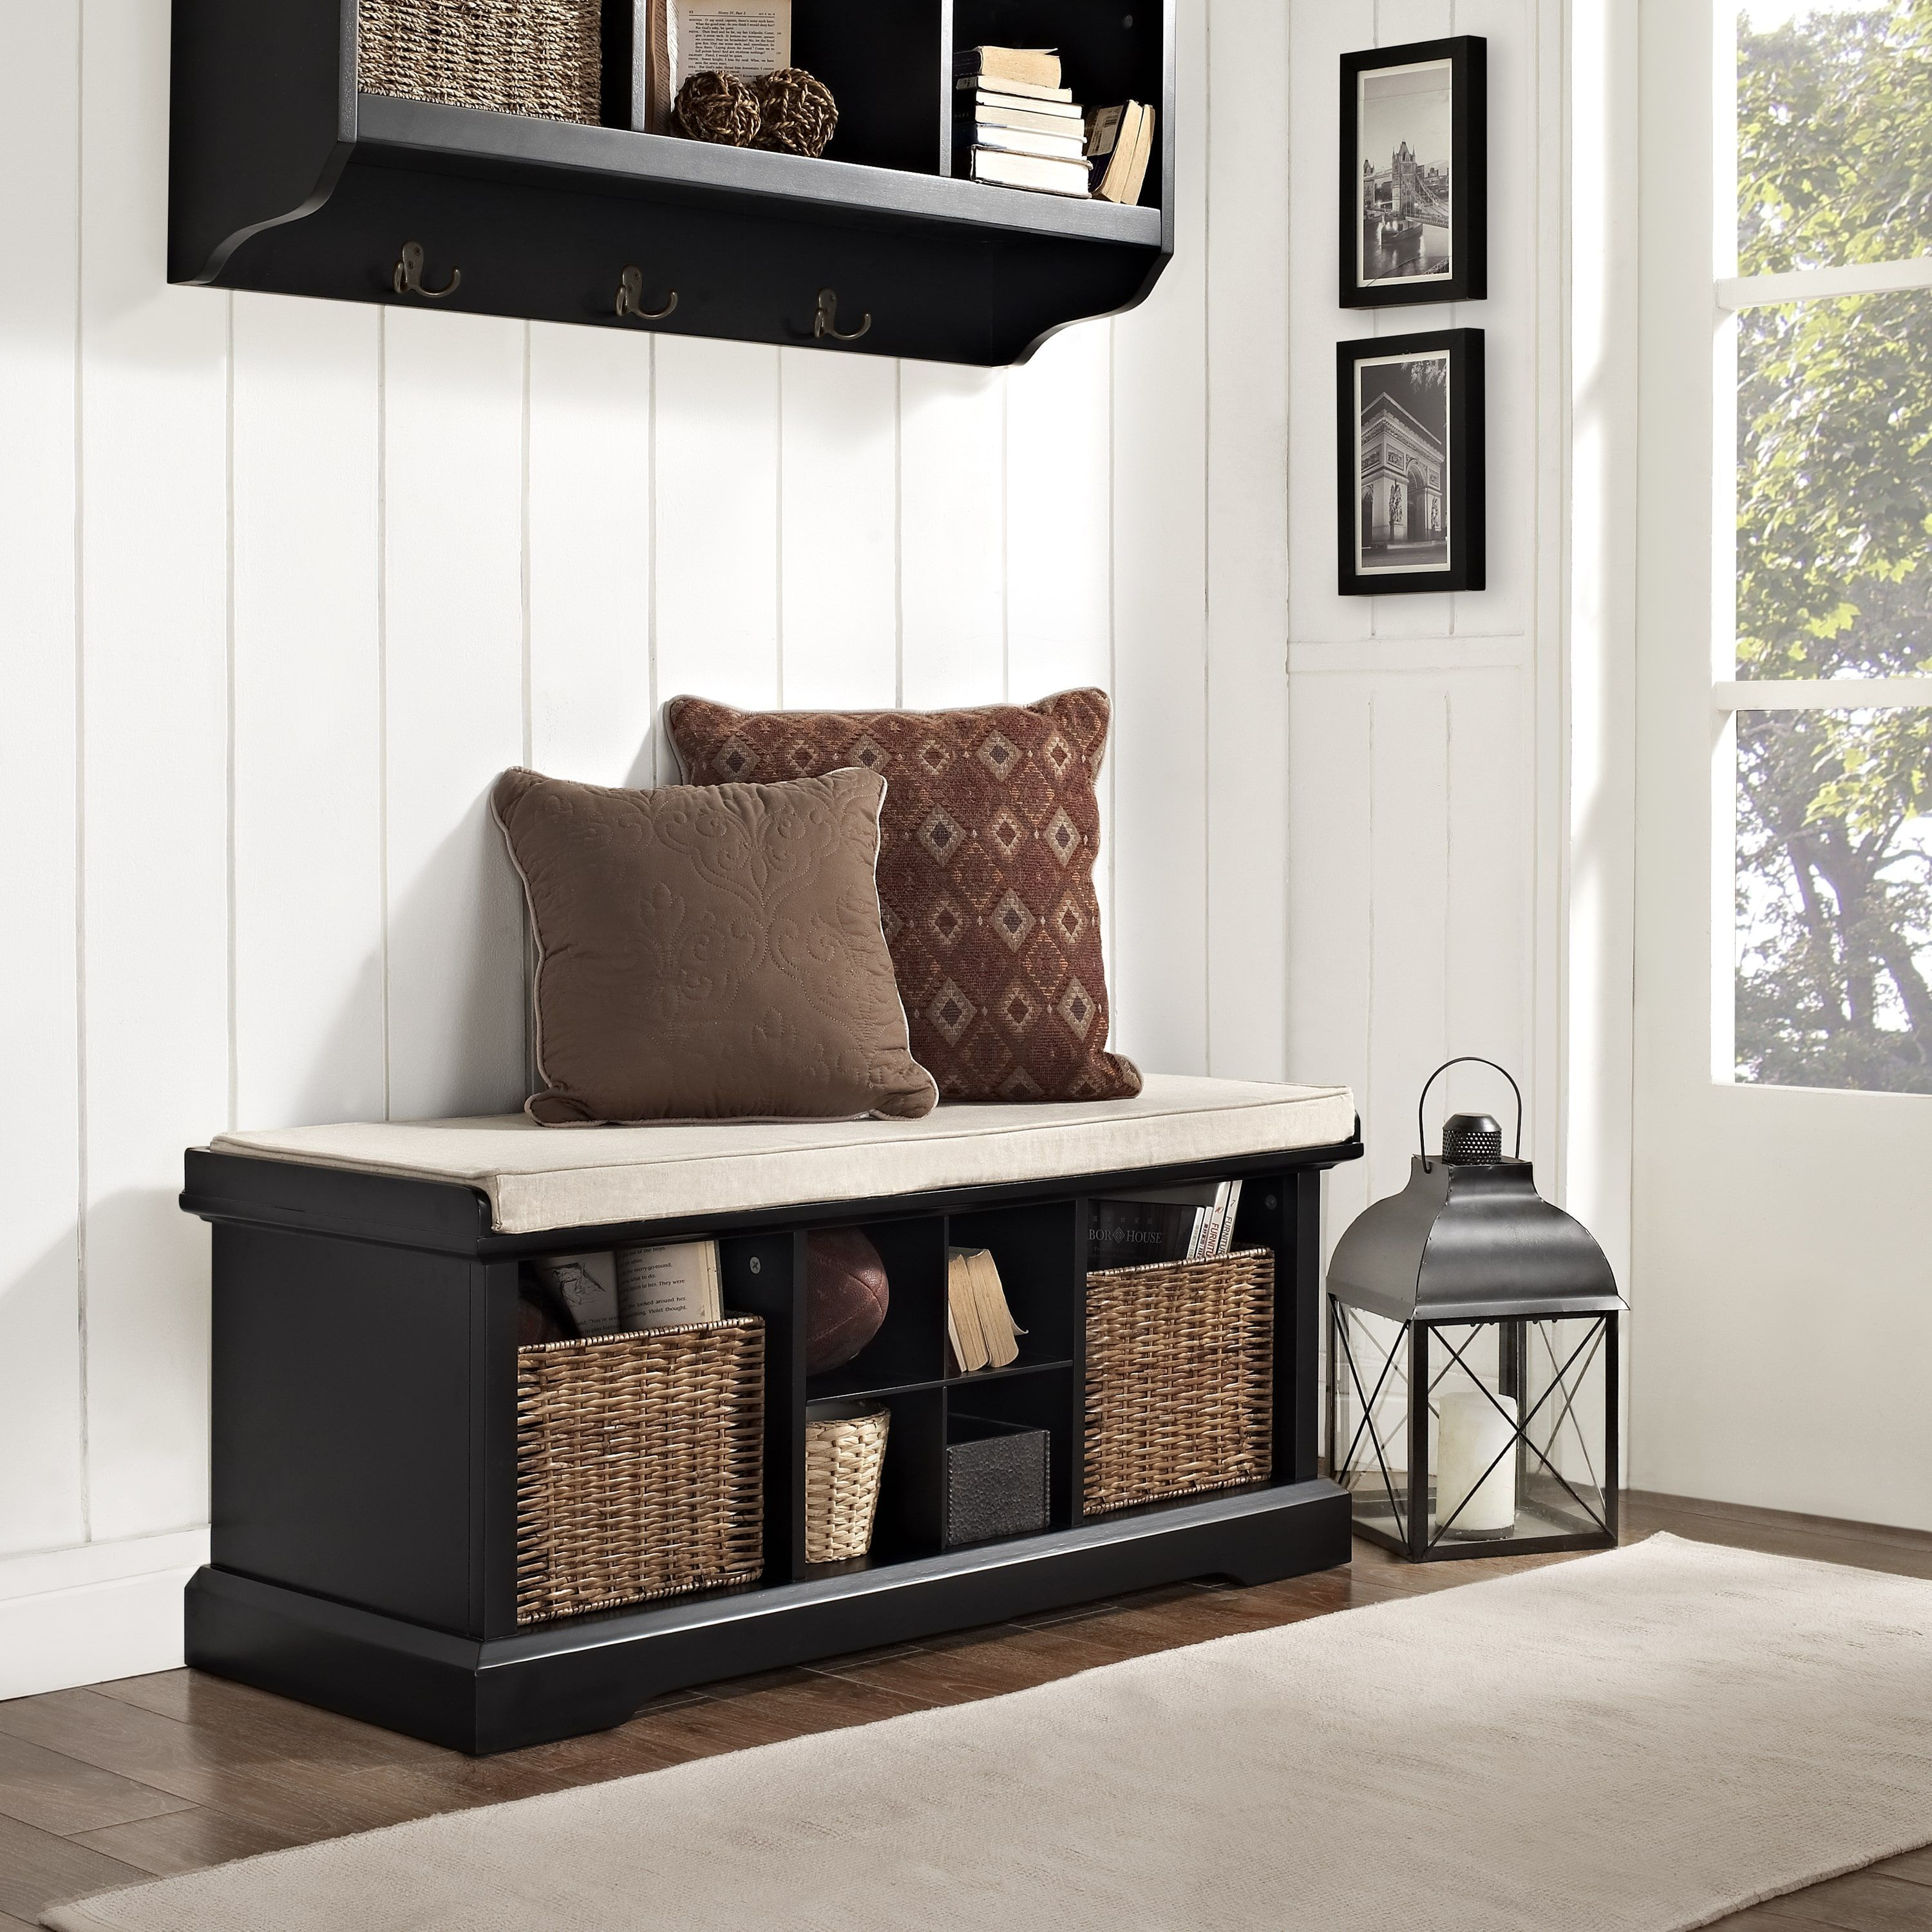 Benches U0026 Settees For Less. Entryway Bench With StorageEntryway ...